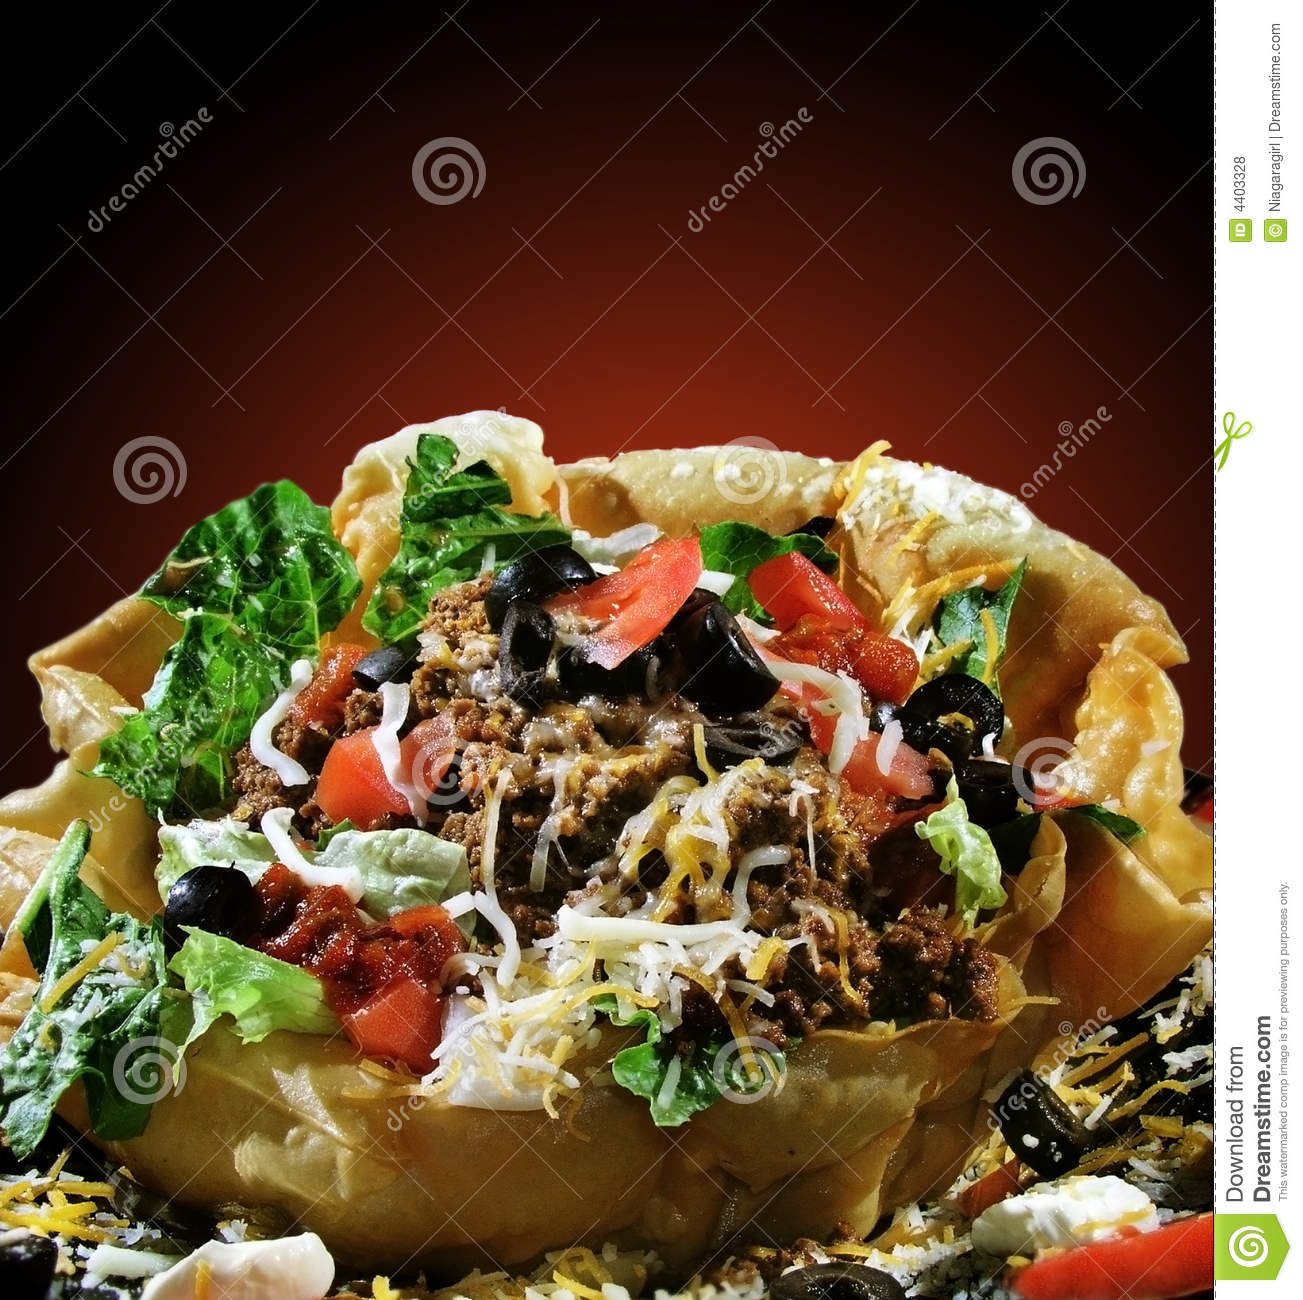 Taco Salad in Shell